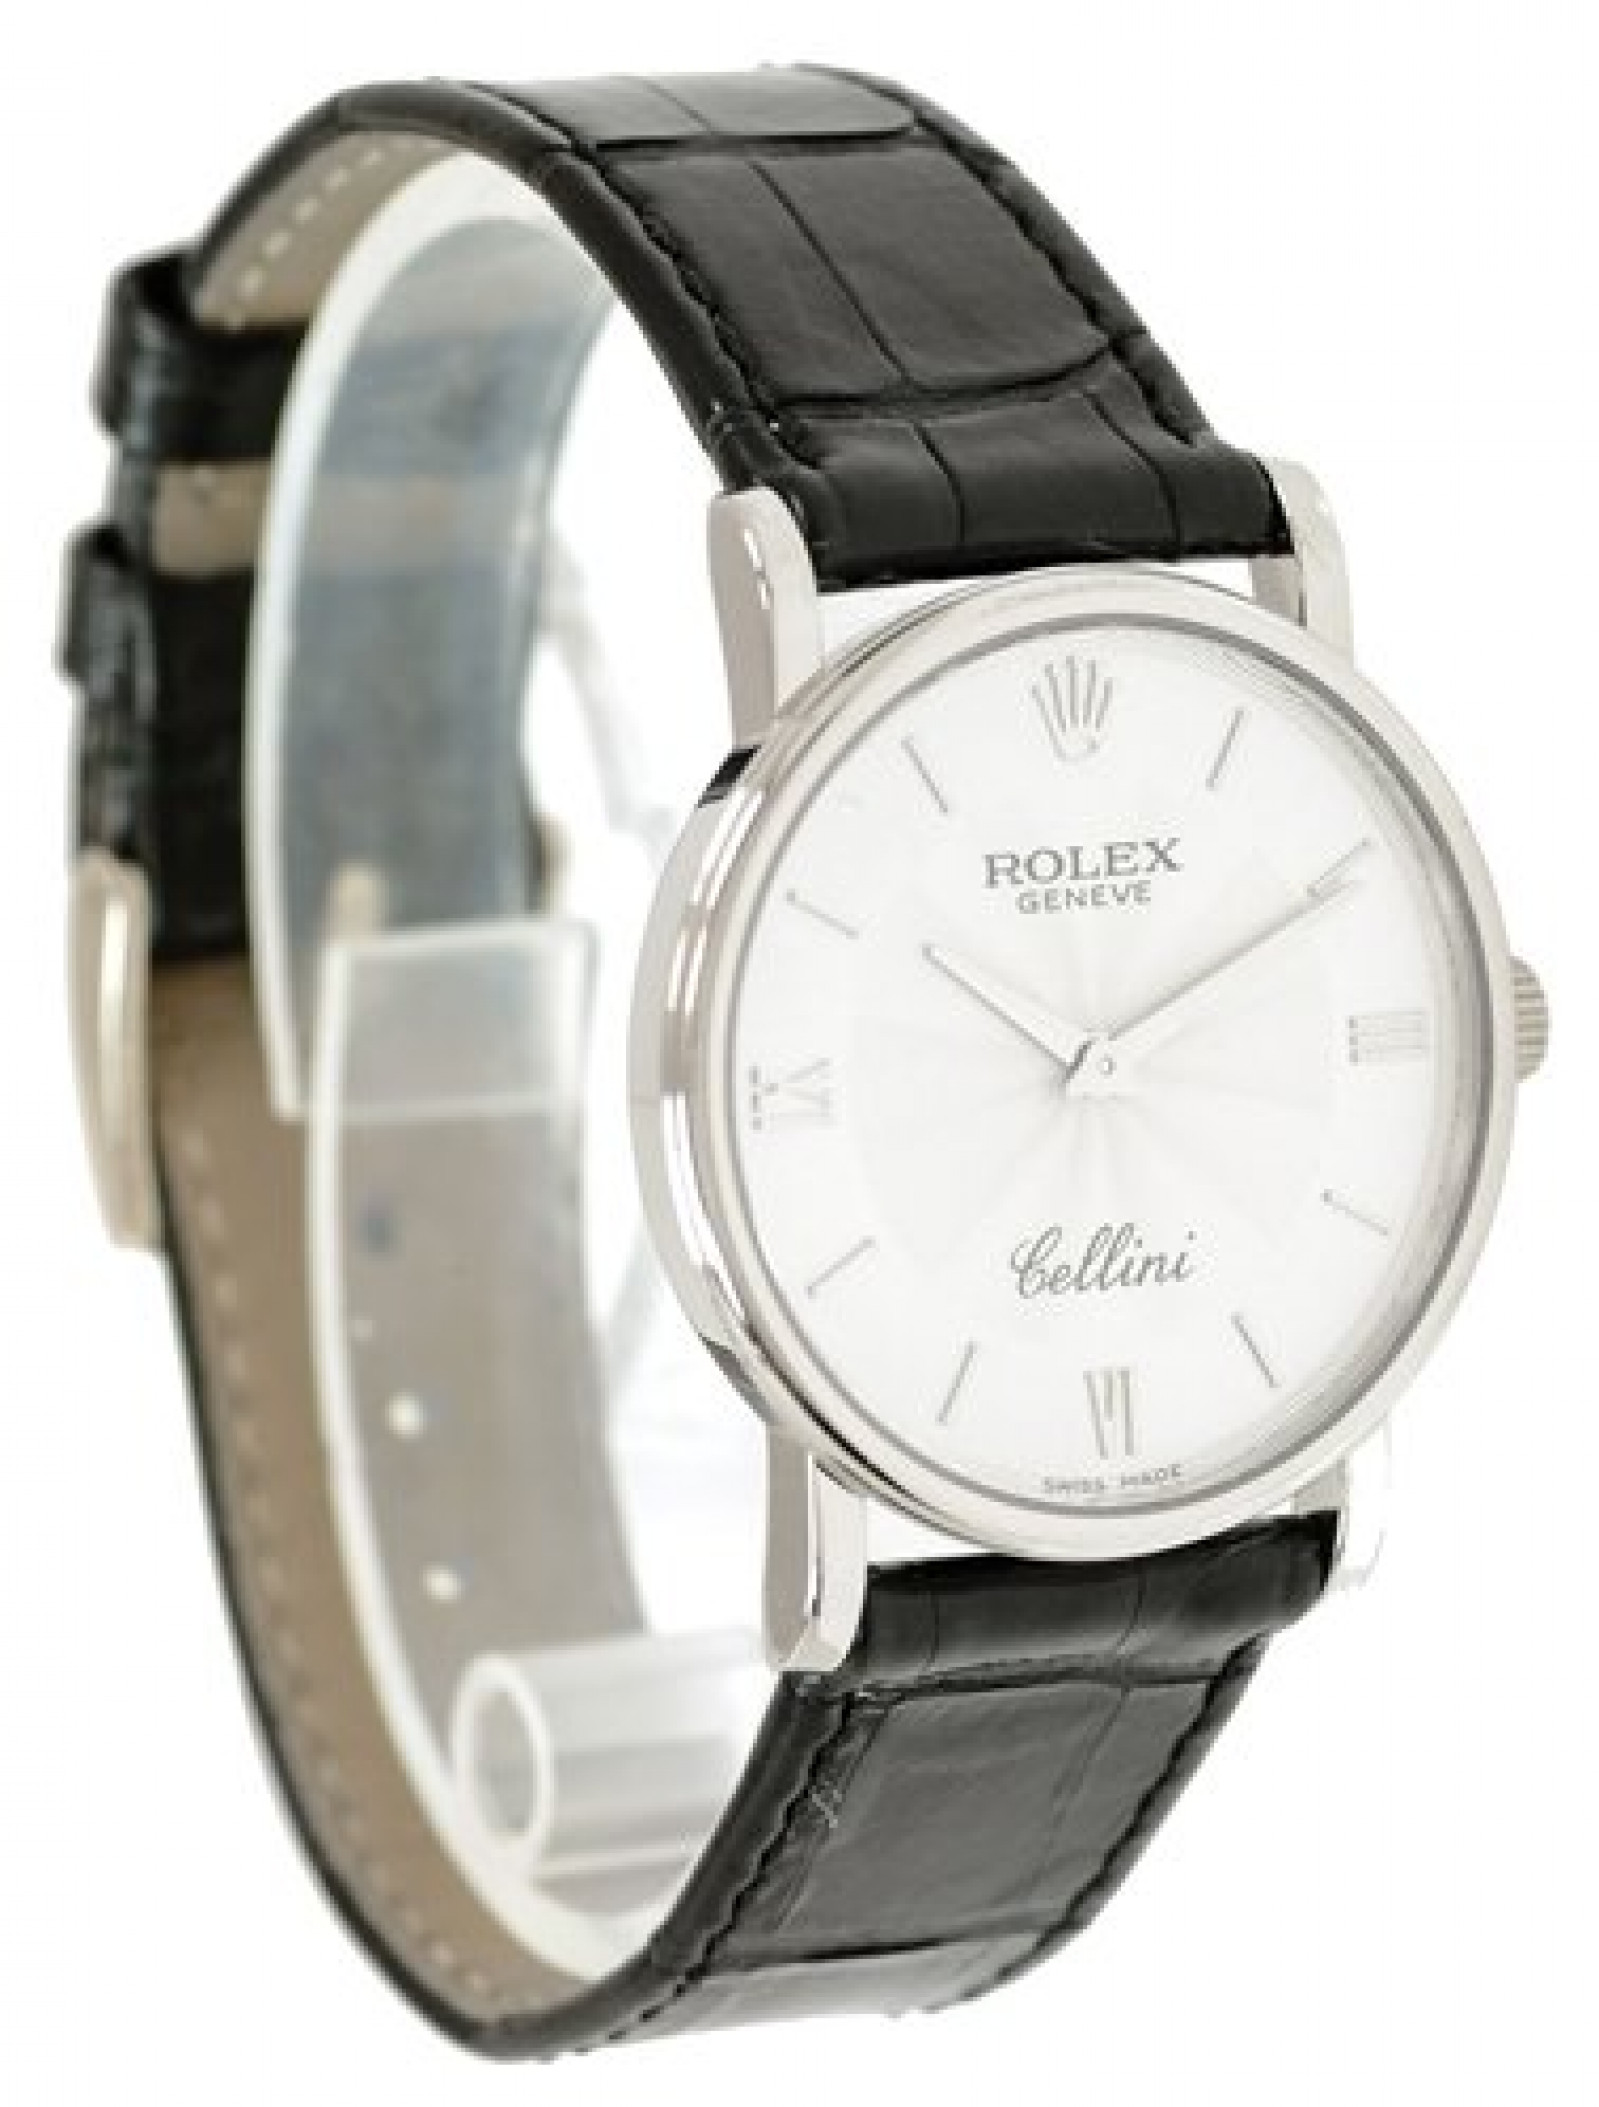 Rolex Cellini 5115/9 White Gold with Silver Dial & Roman Markers